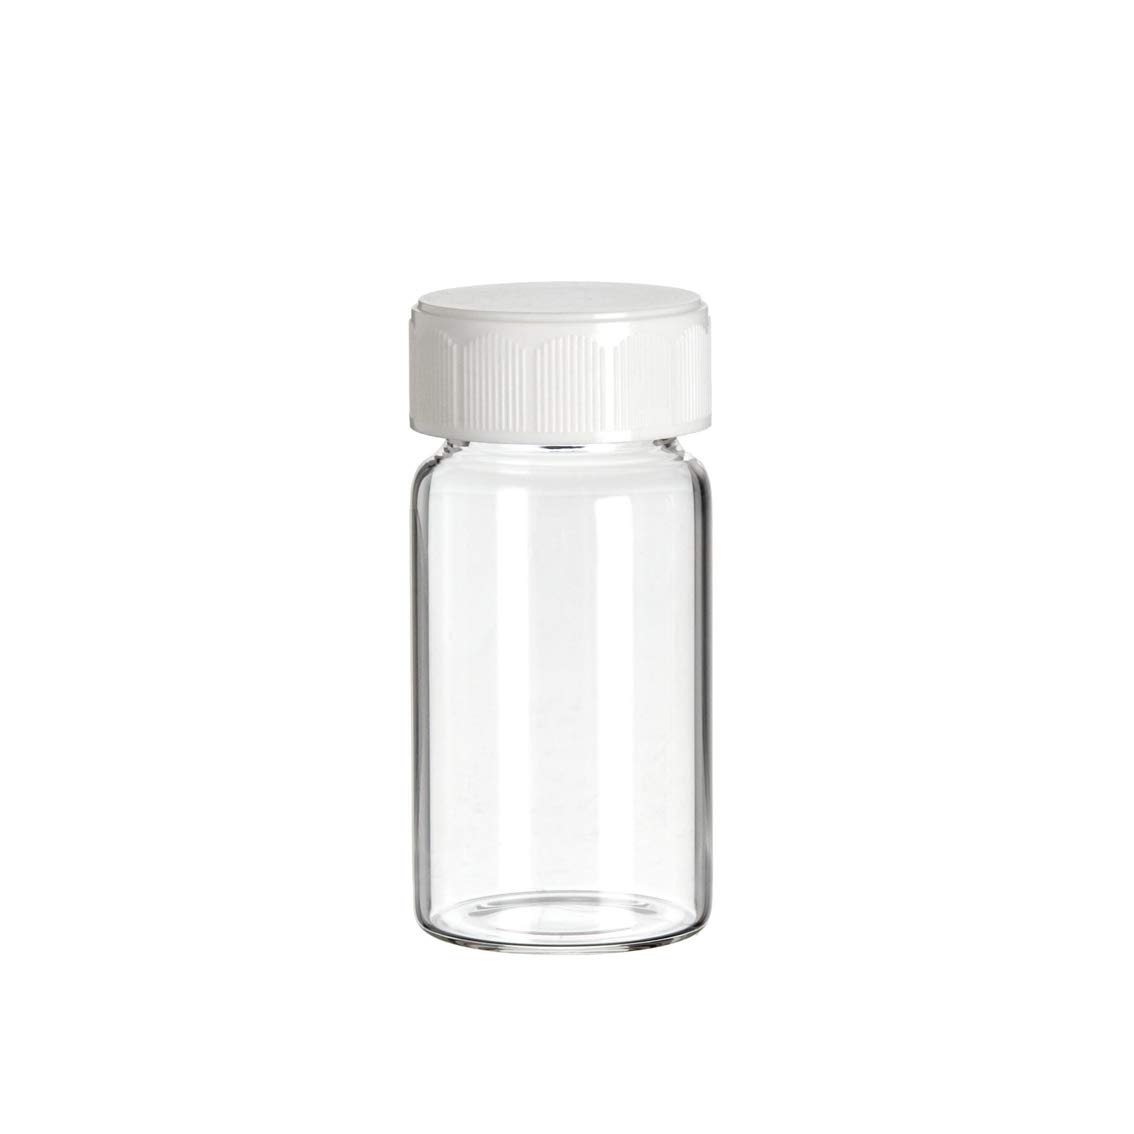 366228203 Borosilicate Glass 20mL Scintillation Vial with Urea Cap Cork-Backed Foil Liner 24-400 GPI Thread Finish (Case of 500)